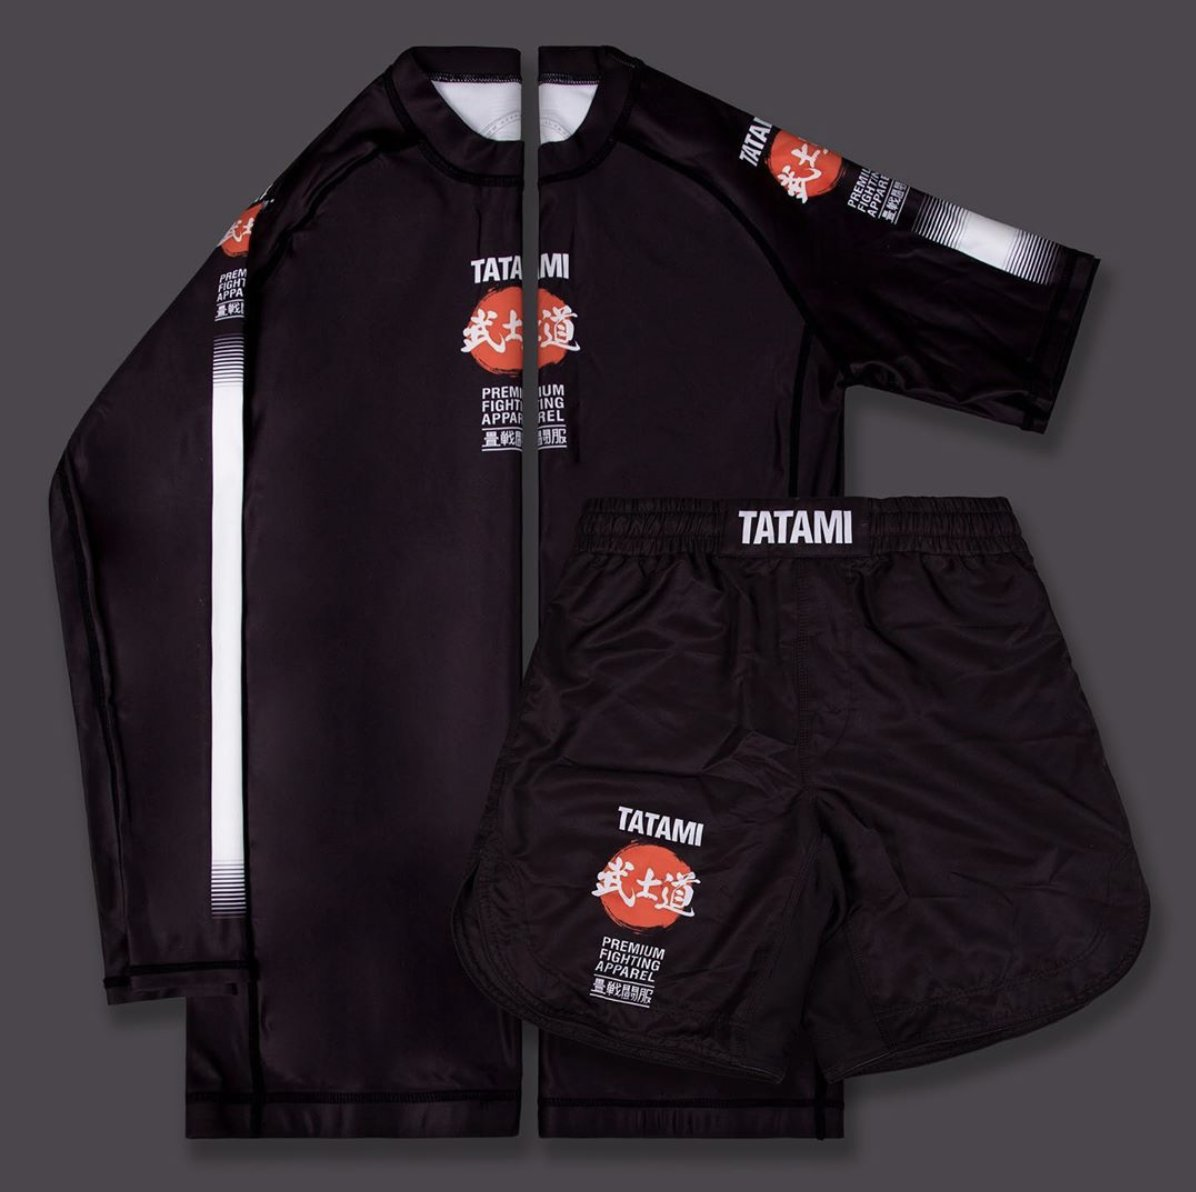 Our SS20 no gi range is available now! Take a look with what we have on offer, including this Bushido range! https://t.co/yi1CrZK7bg https://t.co/bx1D2hIsLR